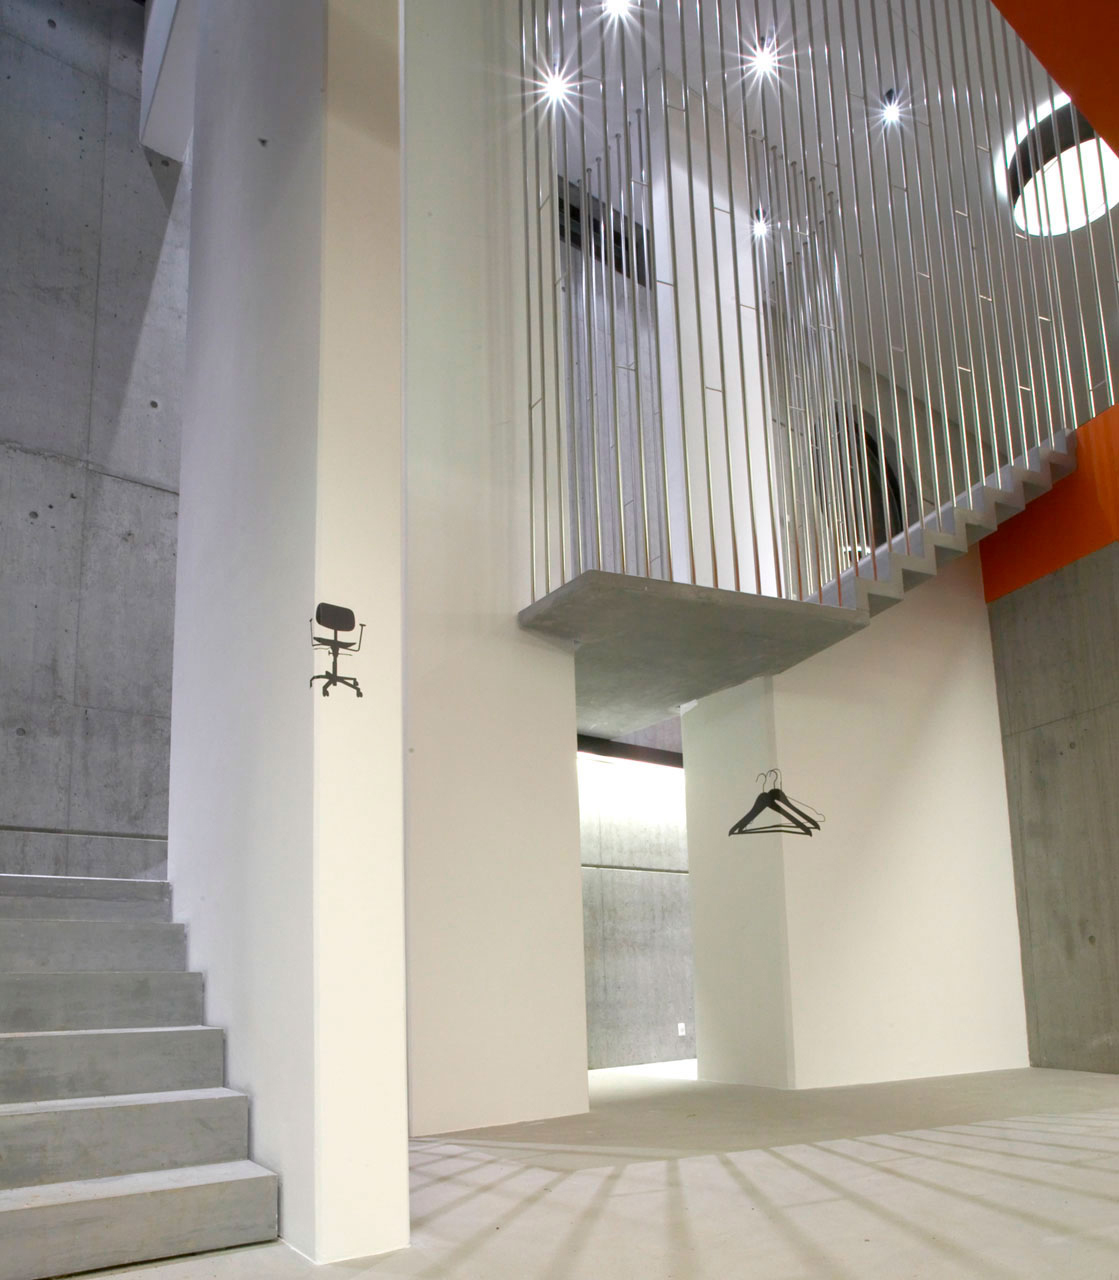 Bellinger House hall, bespoke black graphic foil on walls, concrete staircase with polished stainless steel banisters.